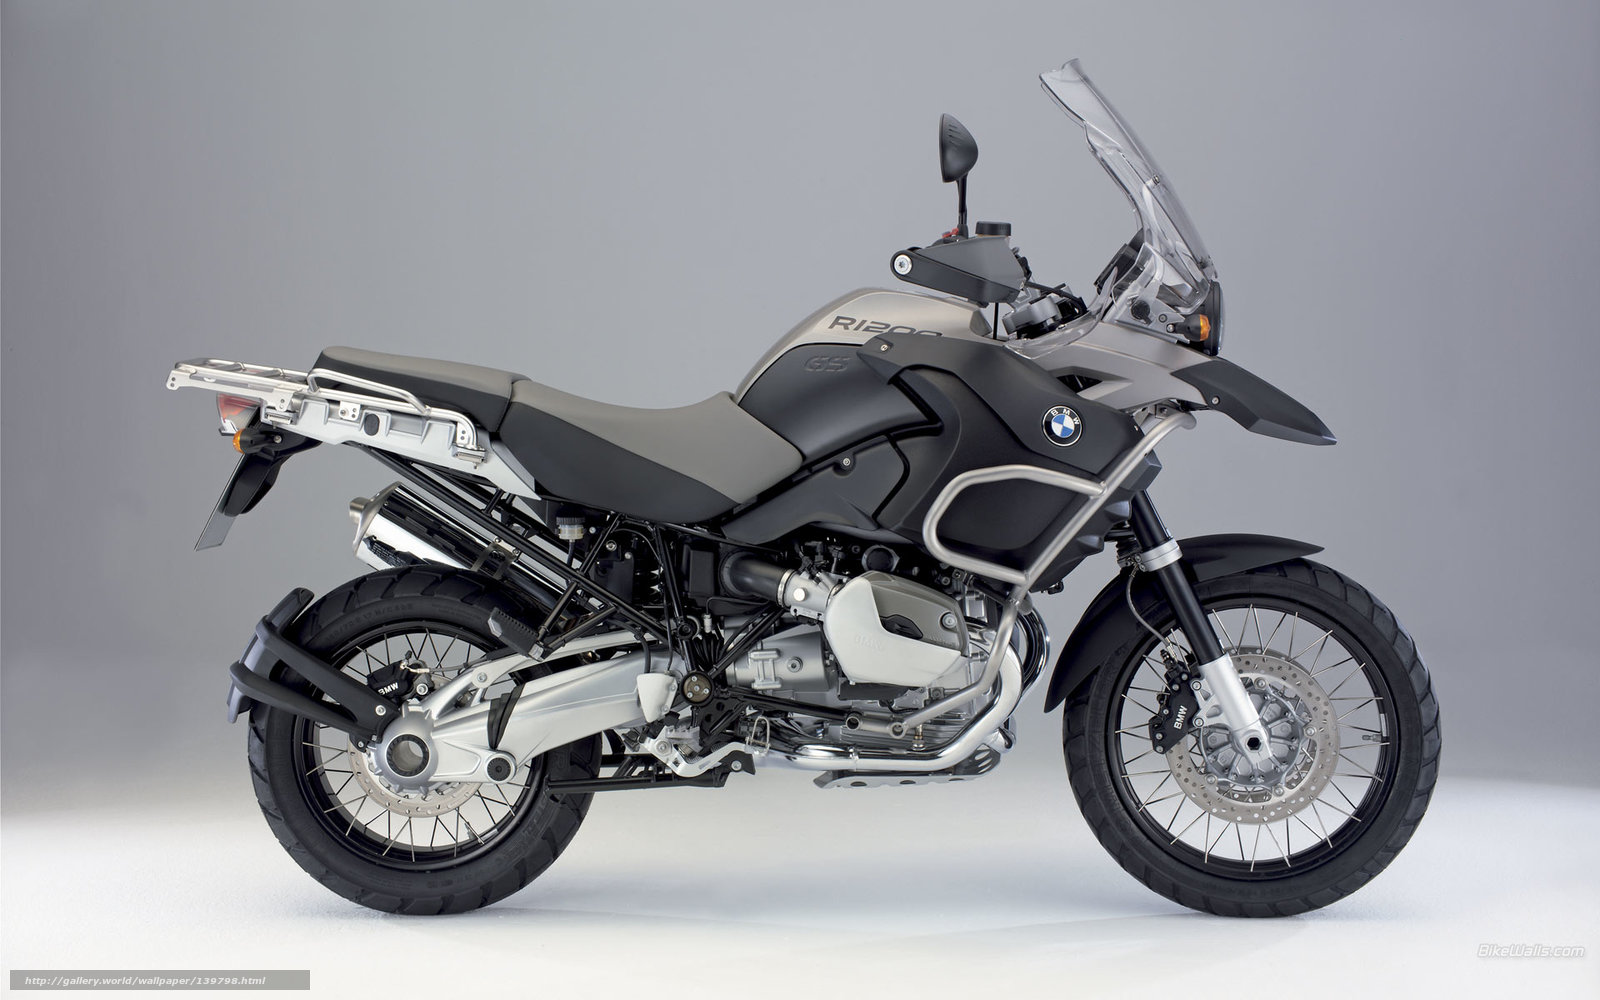 Tlcharger Fond D Ecran Bmw Enduro Funduro R 1200 Gs